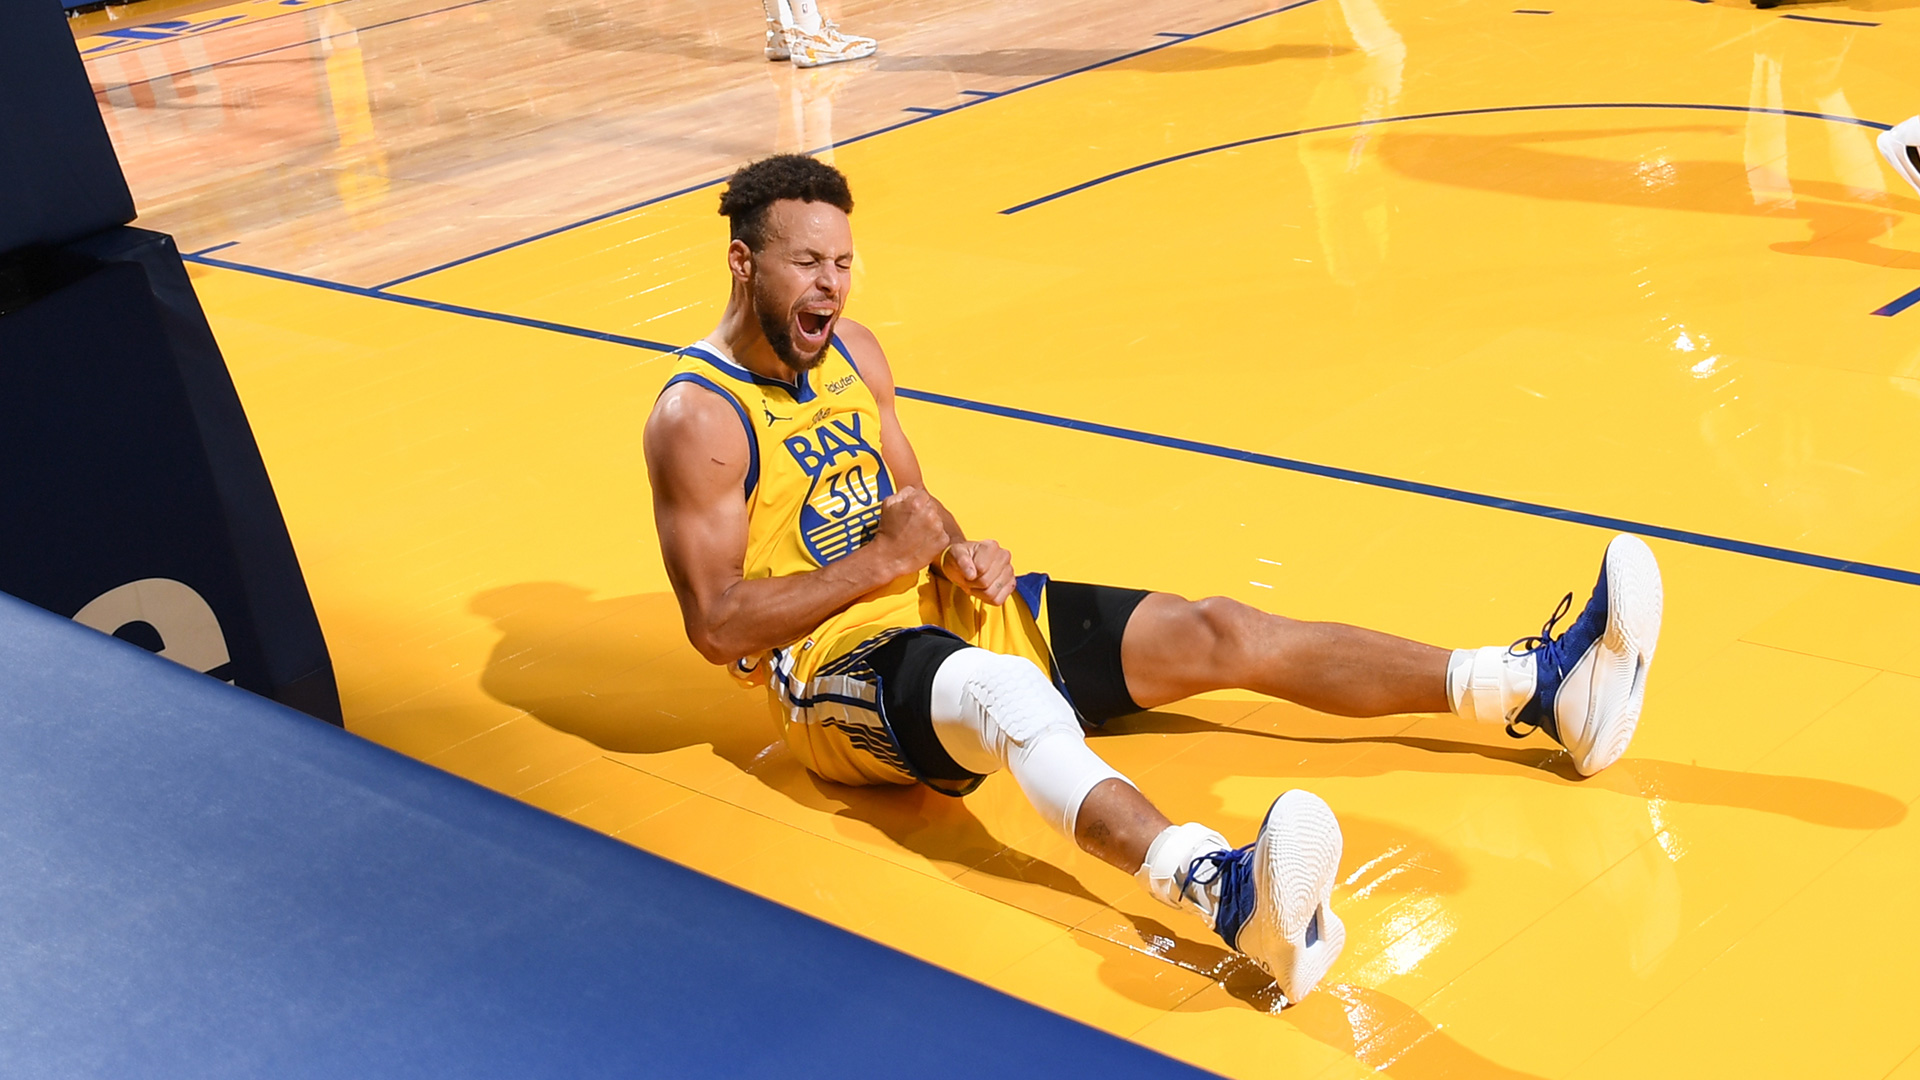 NBA reacts to Stephen Curry's outrageous performance